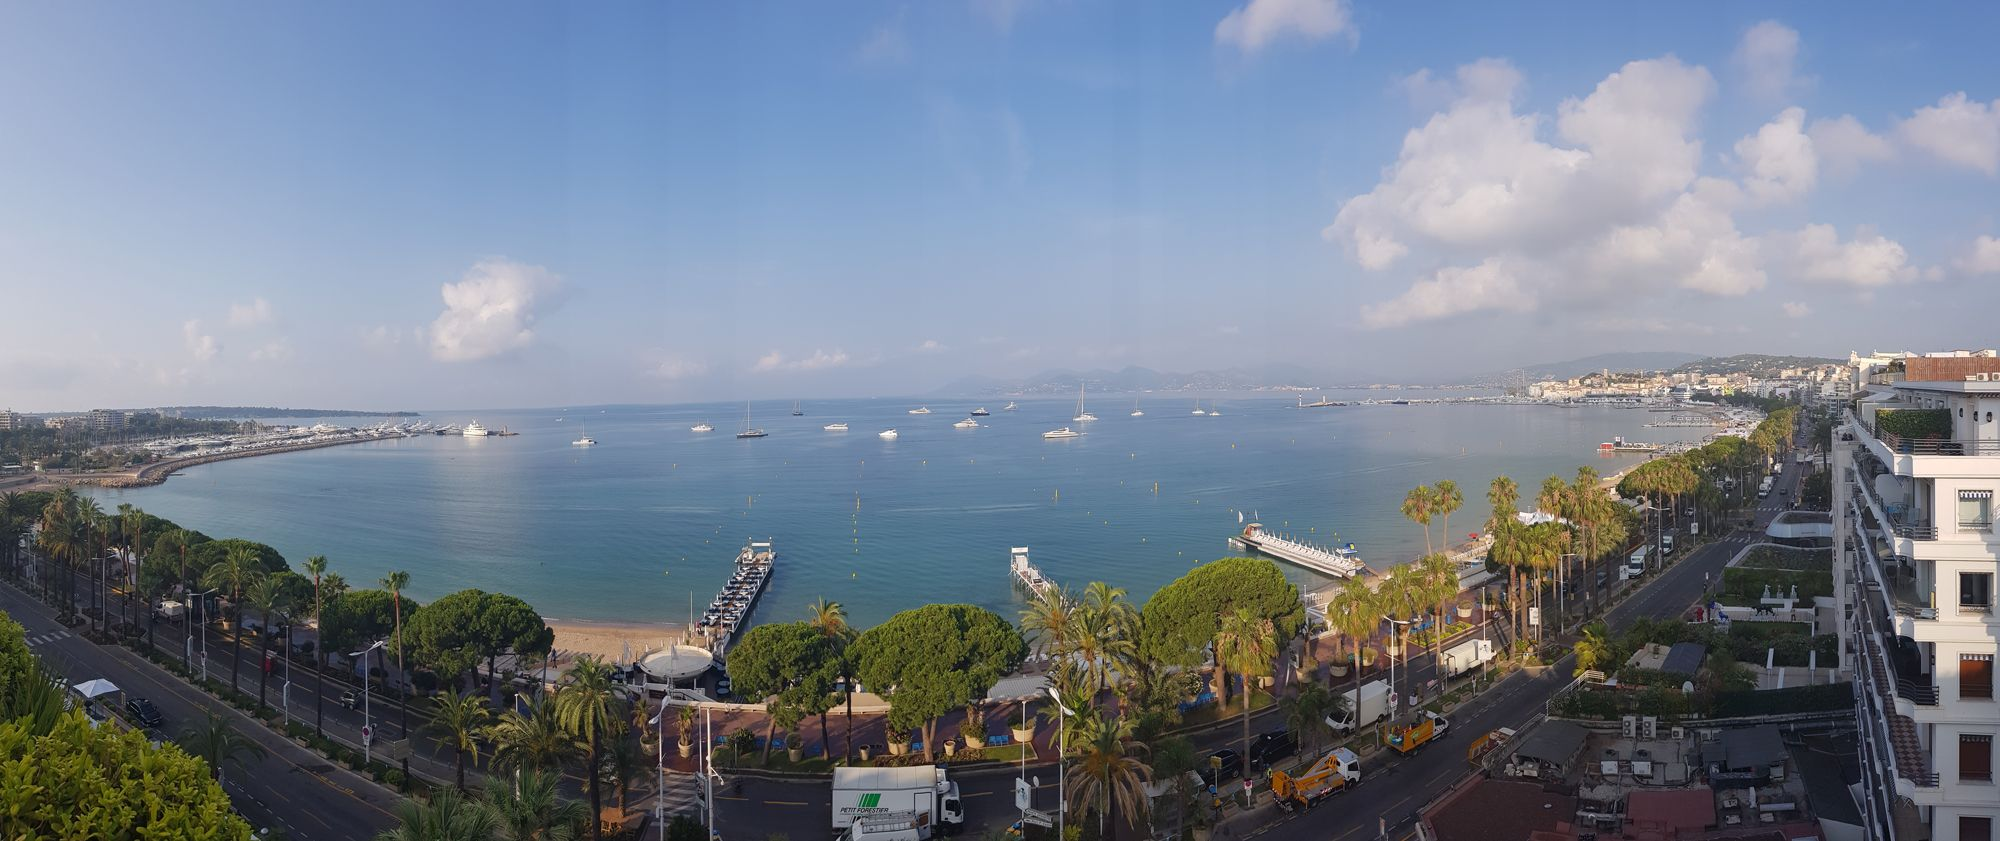 We've moved the #futurehome to the amazing @mediacomglobal suite - what a view! #CannesLions https://t.co/5s2D2MoLBo